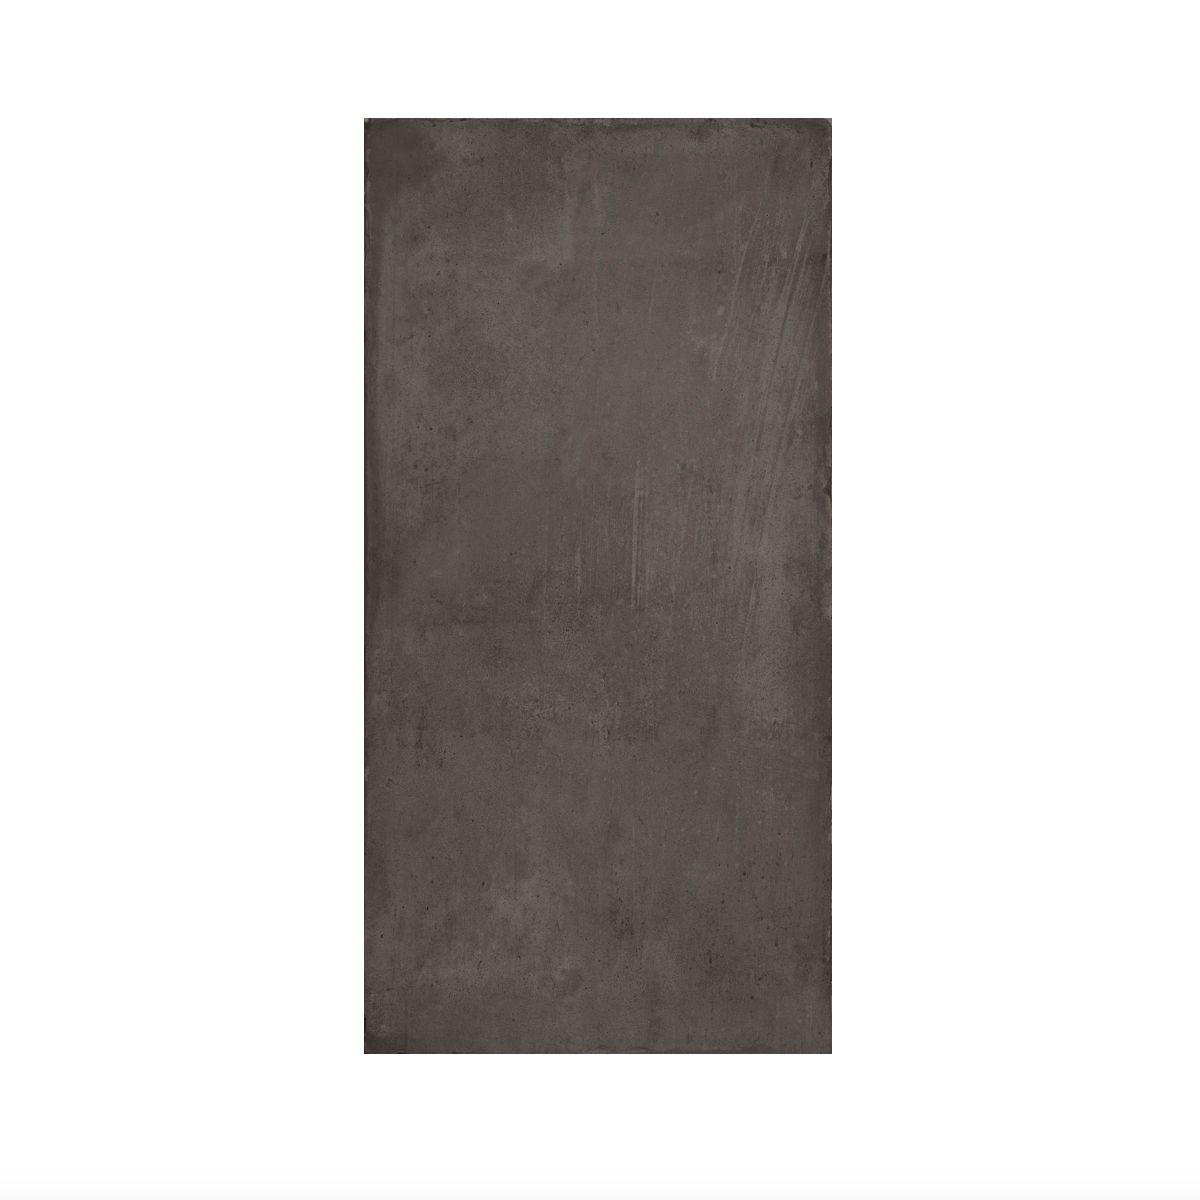 Iris Desire Dark Rectangular Floor Tile